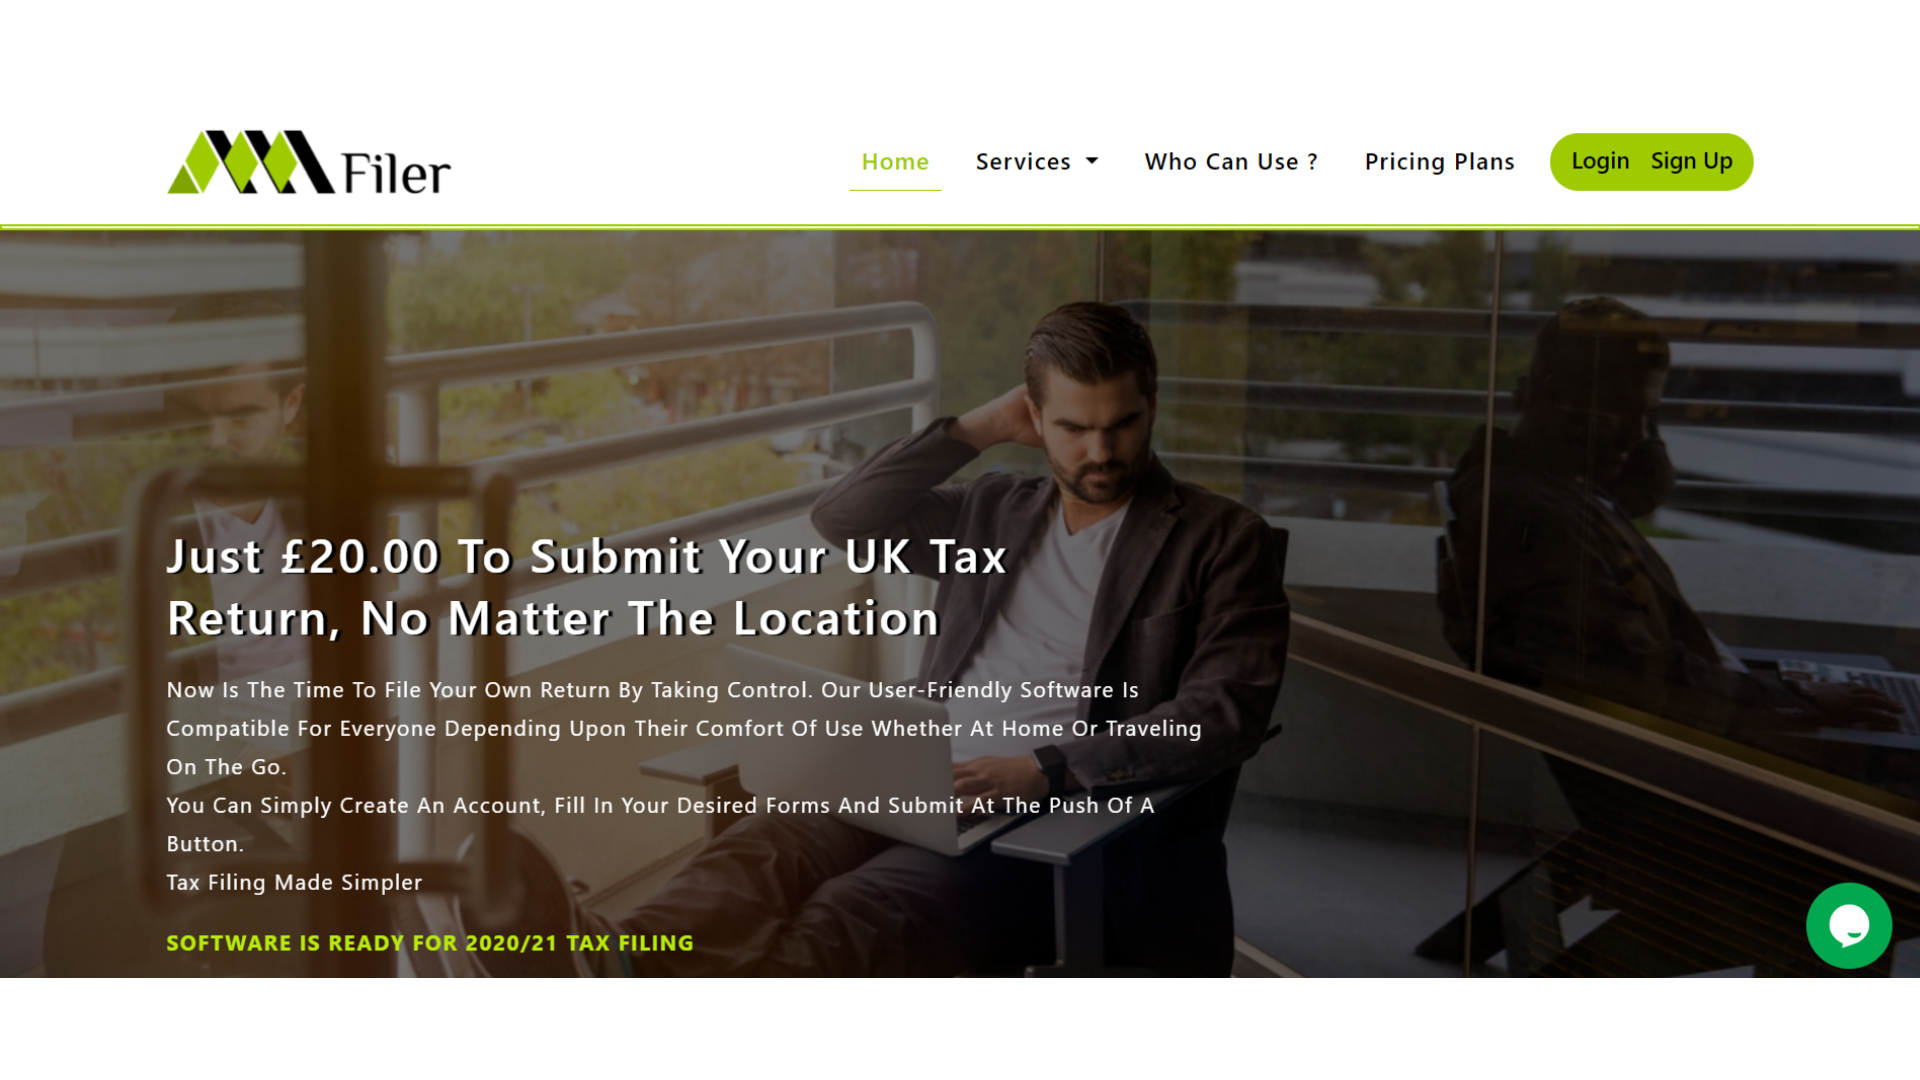 Online Tax Advice Service in Manchester, London - Aaa Filer